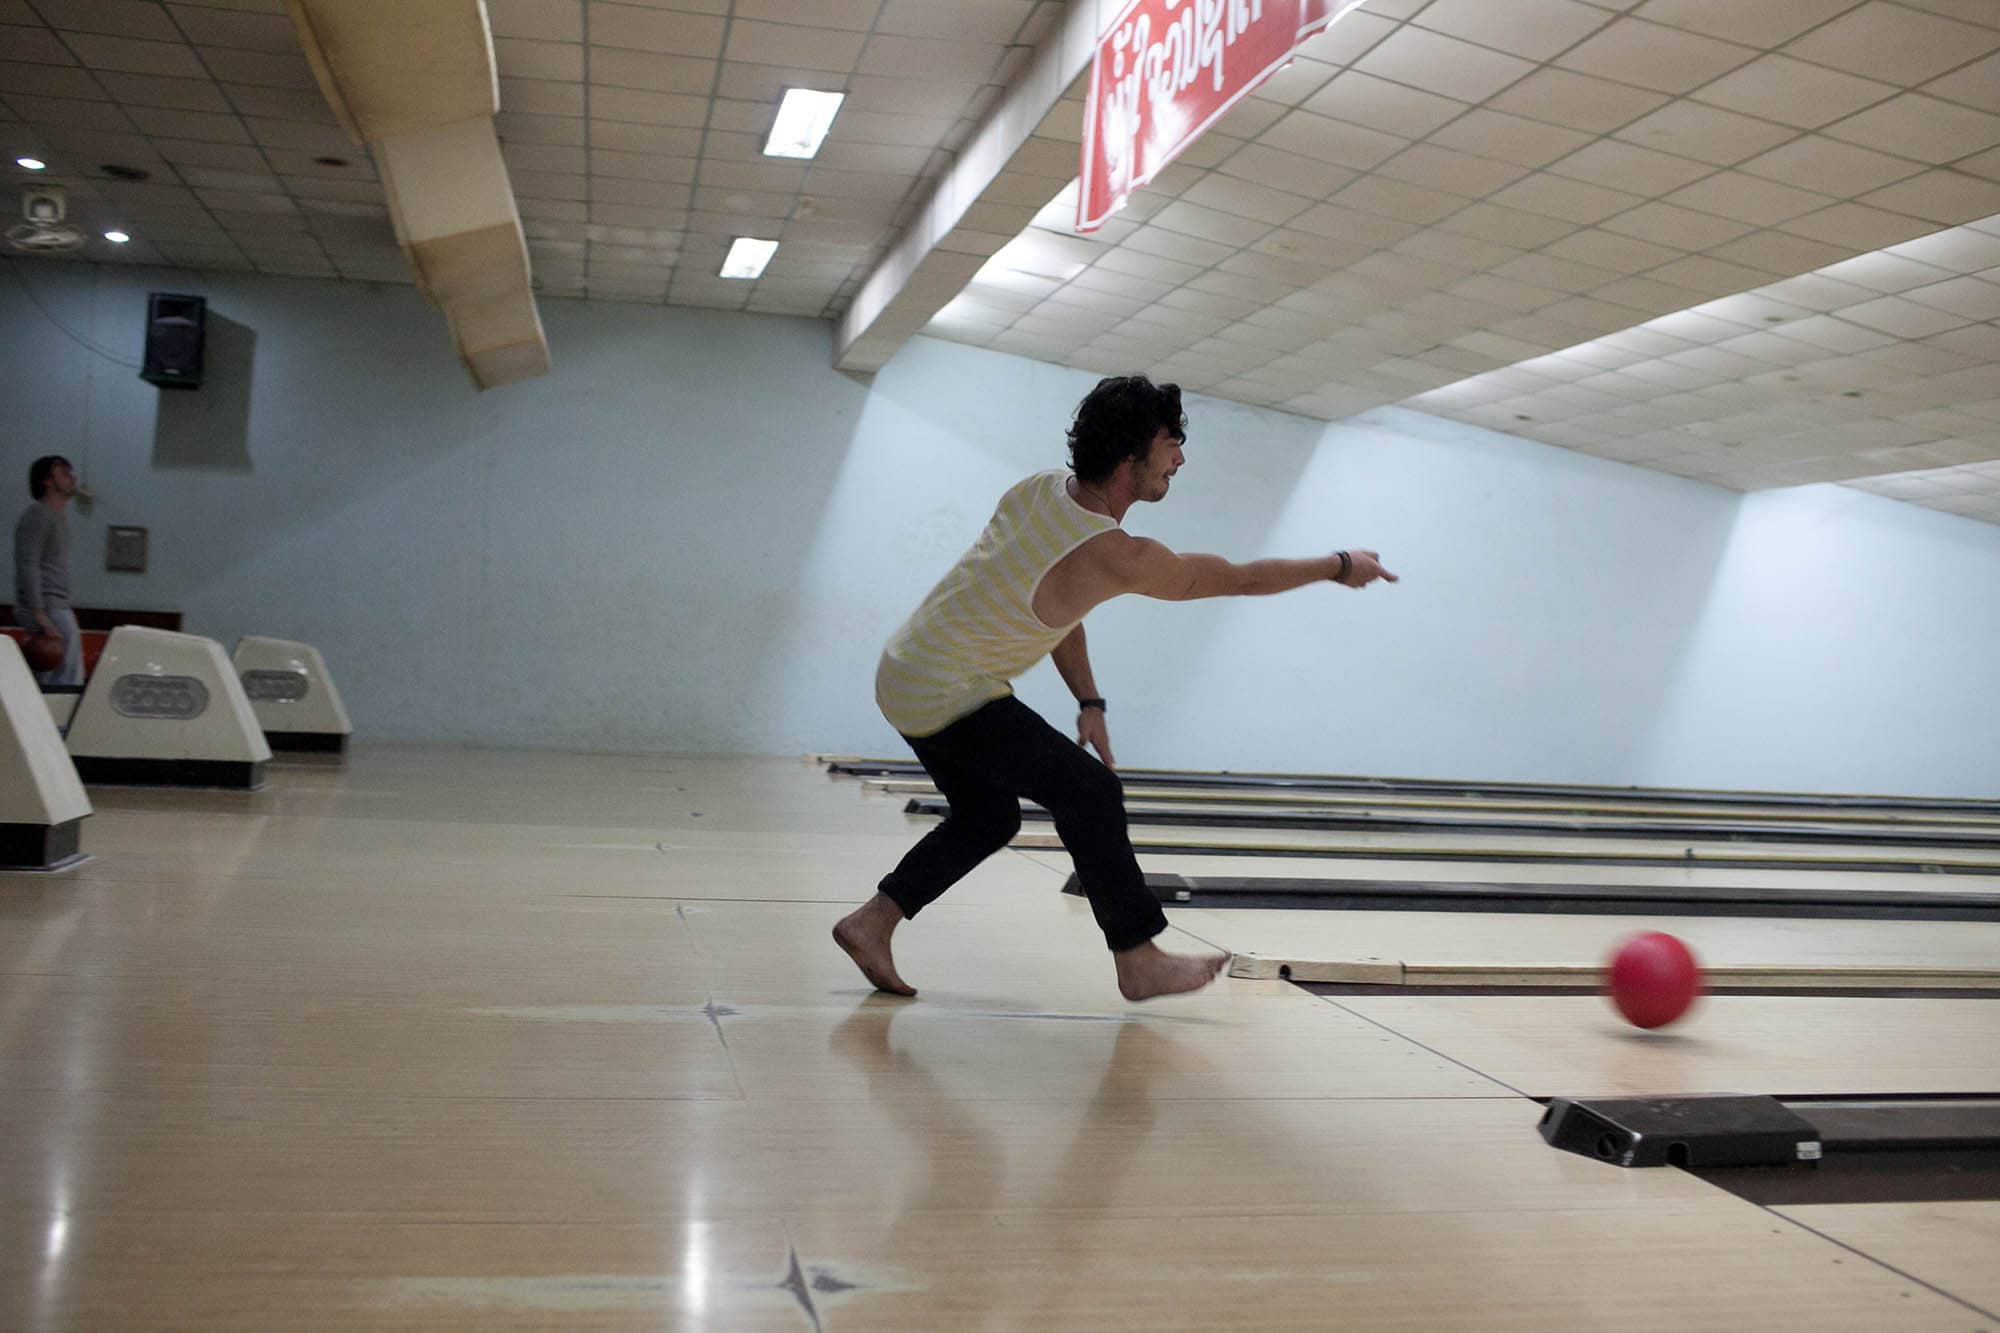 Bowling at Lao Bowling Center in Vientiane, Laos.